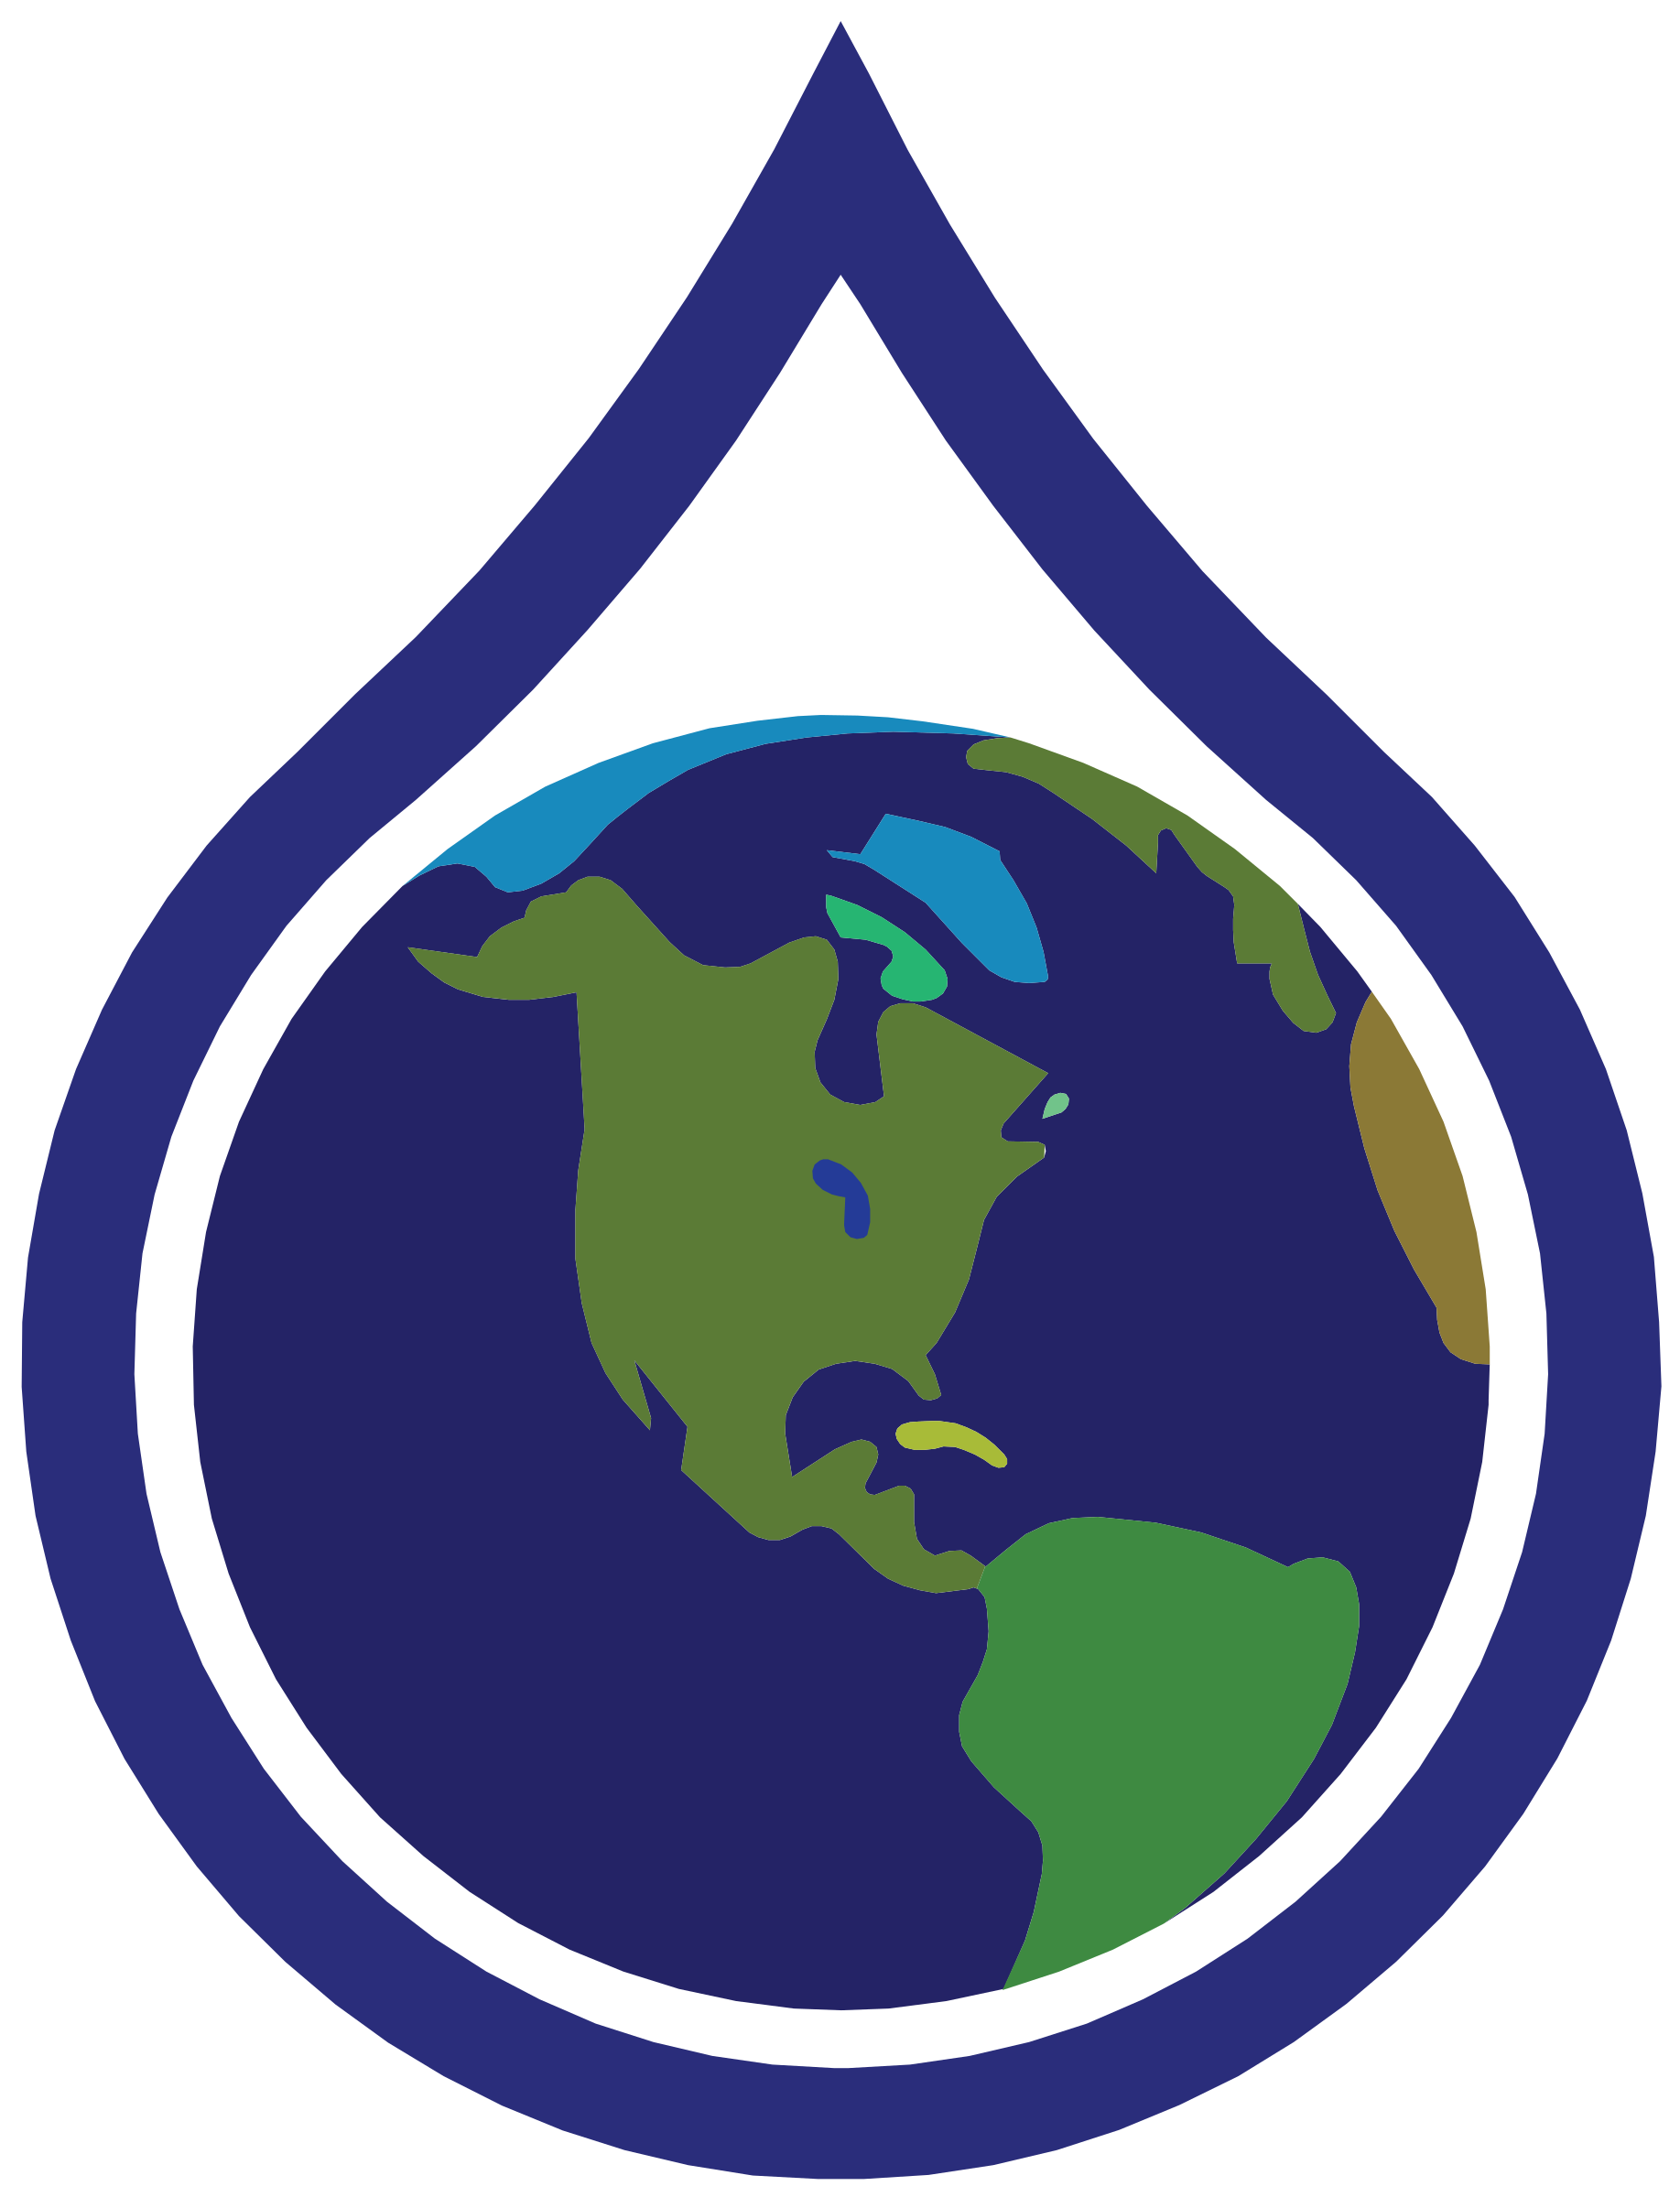 Globe clipart polluted. World water pollution clip